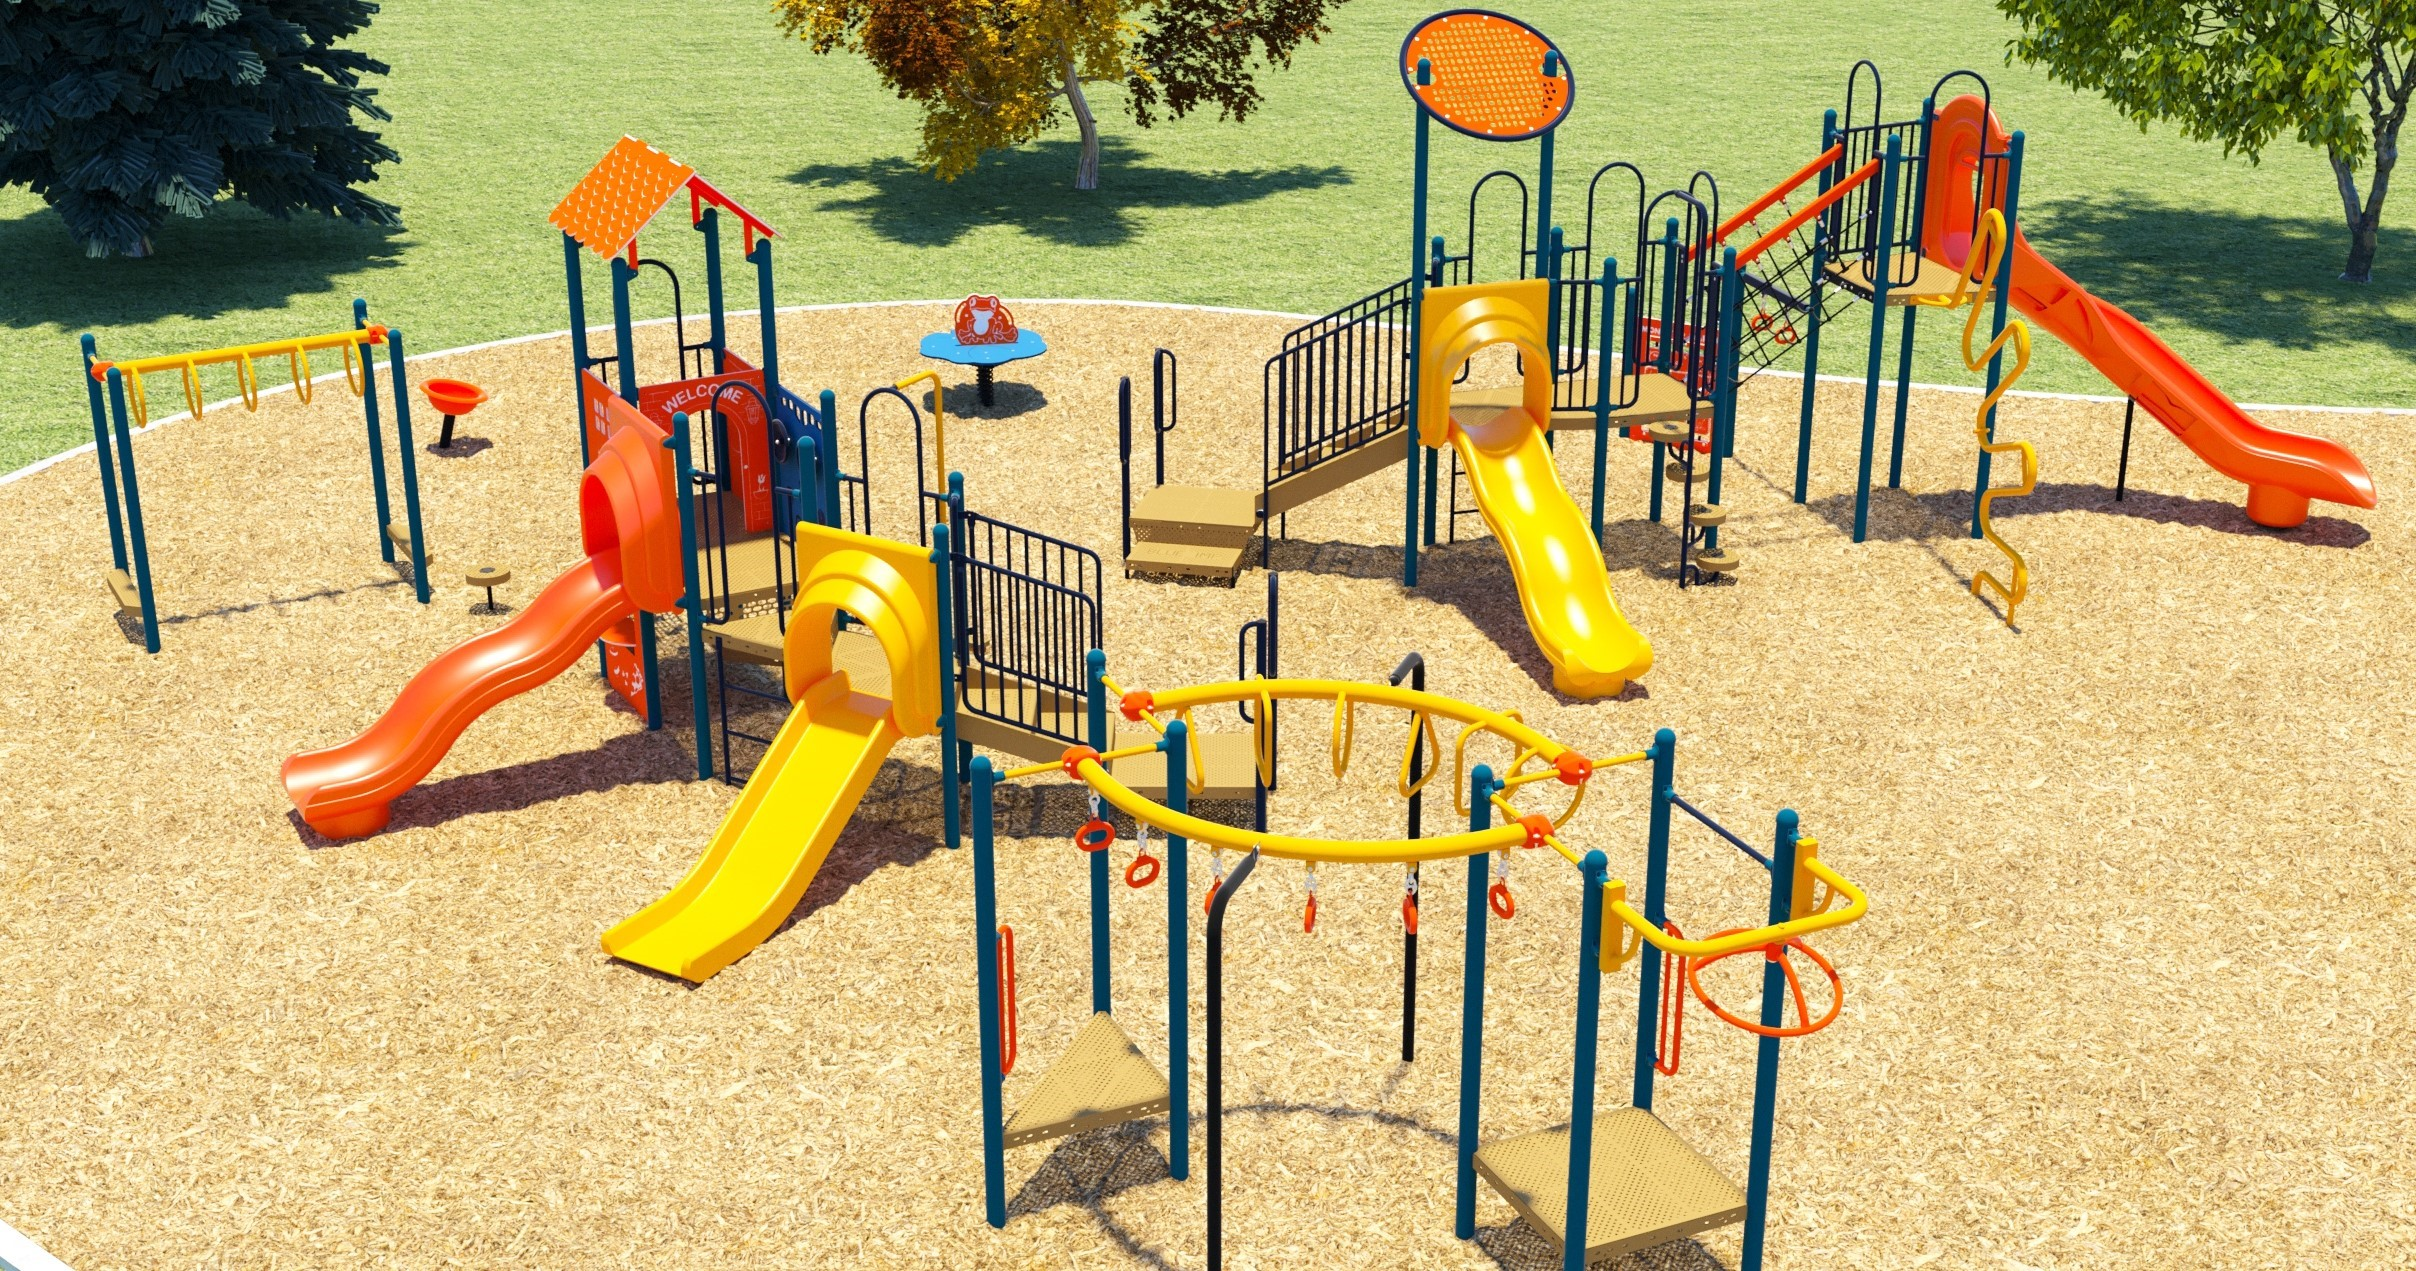 An rendering of the new playground showing a A junior play structure (ages 2 to 5) with: one straight and one wavy slide, Three climbing options, Money bars, and Three play panels; a A senior play structure (ages 5 to 12) with two large slides, Three climbing options, Multiple monkey bars; One leaping lily pad; and One cup spinner.